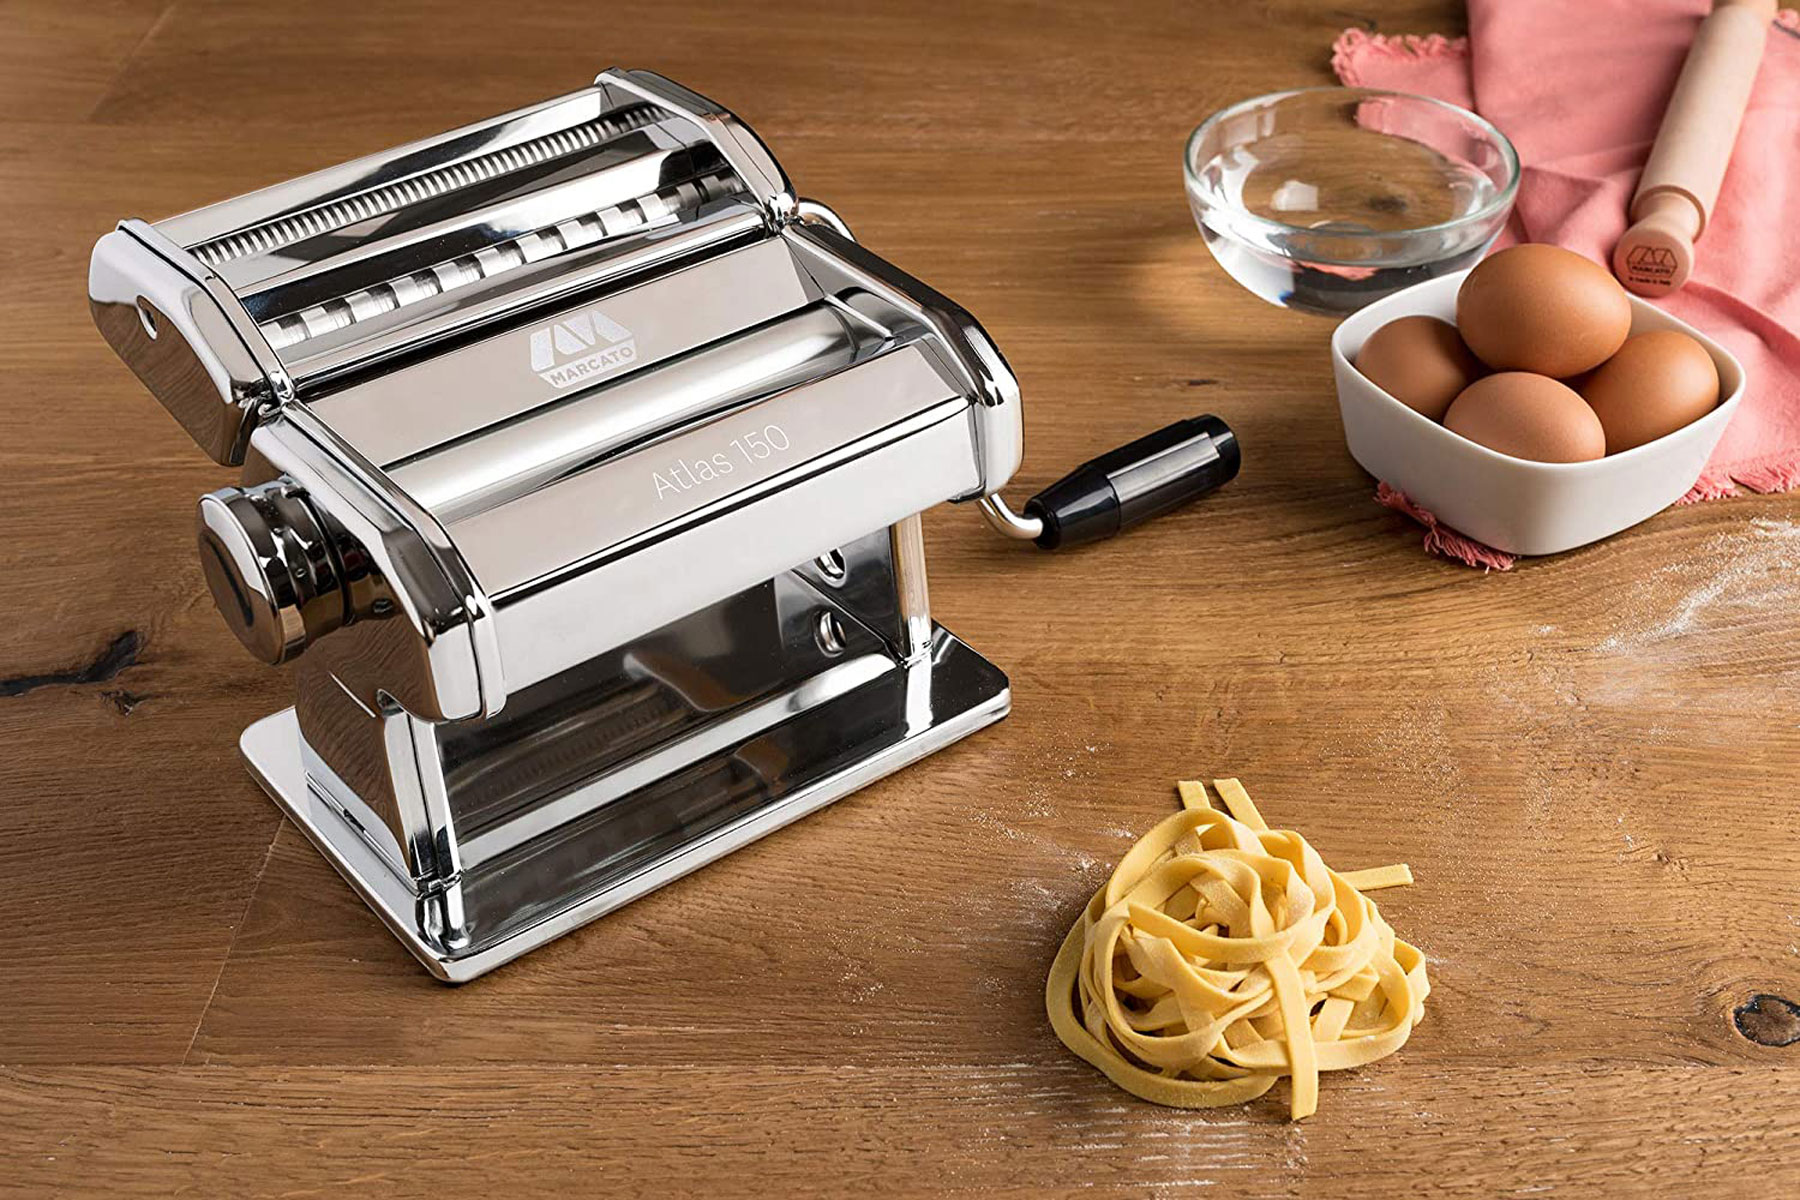 Silver pasta machine on wooden table